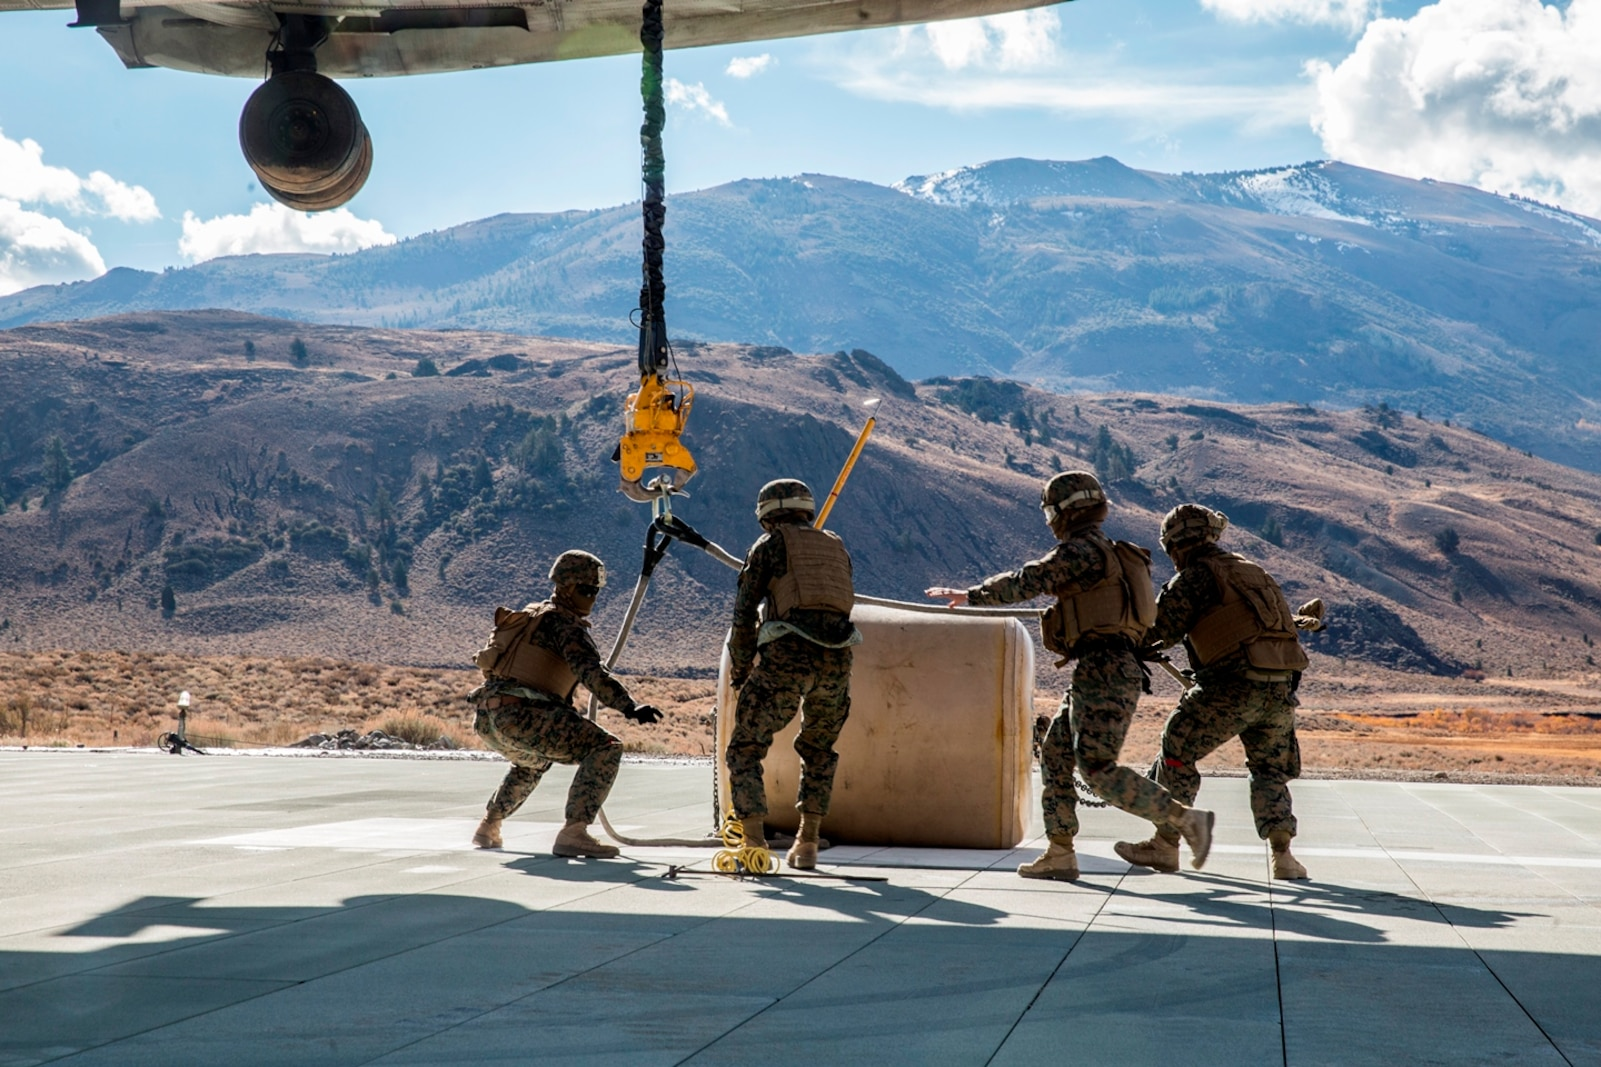 U.S. Marines with Combat Logistics Battalion 15, 1st Marine Logistics Group, and 3rd Battalion, 4th Marine Regiment, 1st Marine Division, strap a 500-gallon drum of water to a CH-53E Super Stallion, with Marine Heavy Helicopter Squadron 466, during a Helicopter Support Team drill at Mountain Warfare Training Center, Bridgeport, Calif., Oct. 25, 2016. The drum was taken into the Sierra Mesa Mountains to support Marines who are conducting field operations during Mountain Exercise 6-16. (U.S. Marine Corps photo by Lance Cpl. Adam Dublinske)